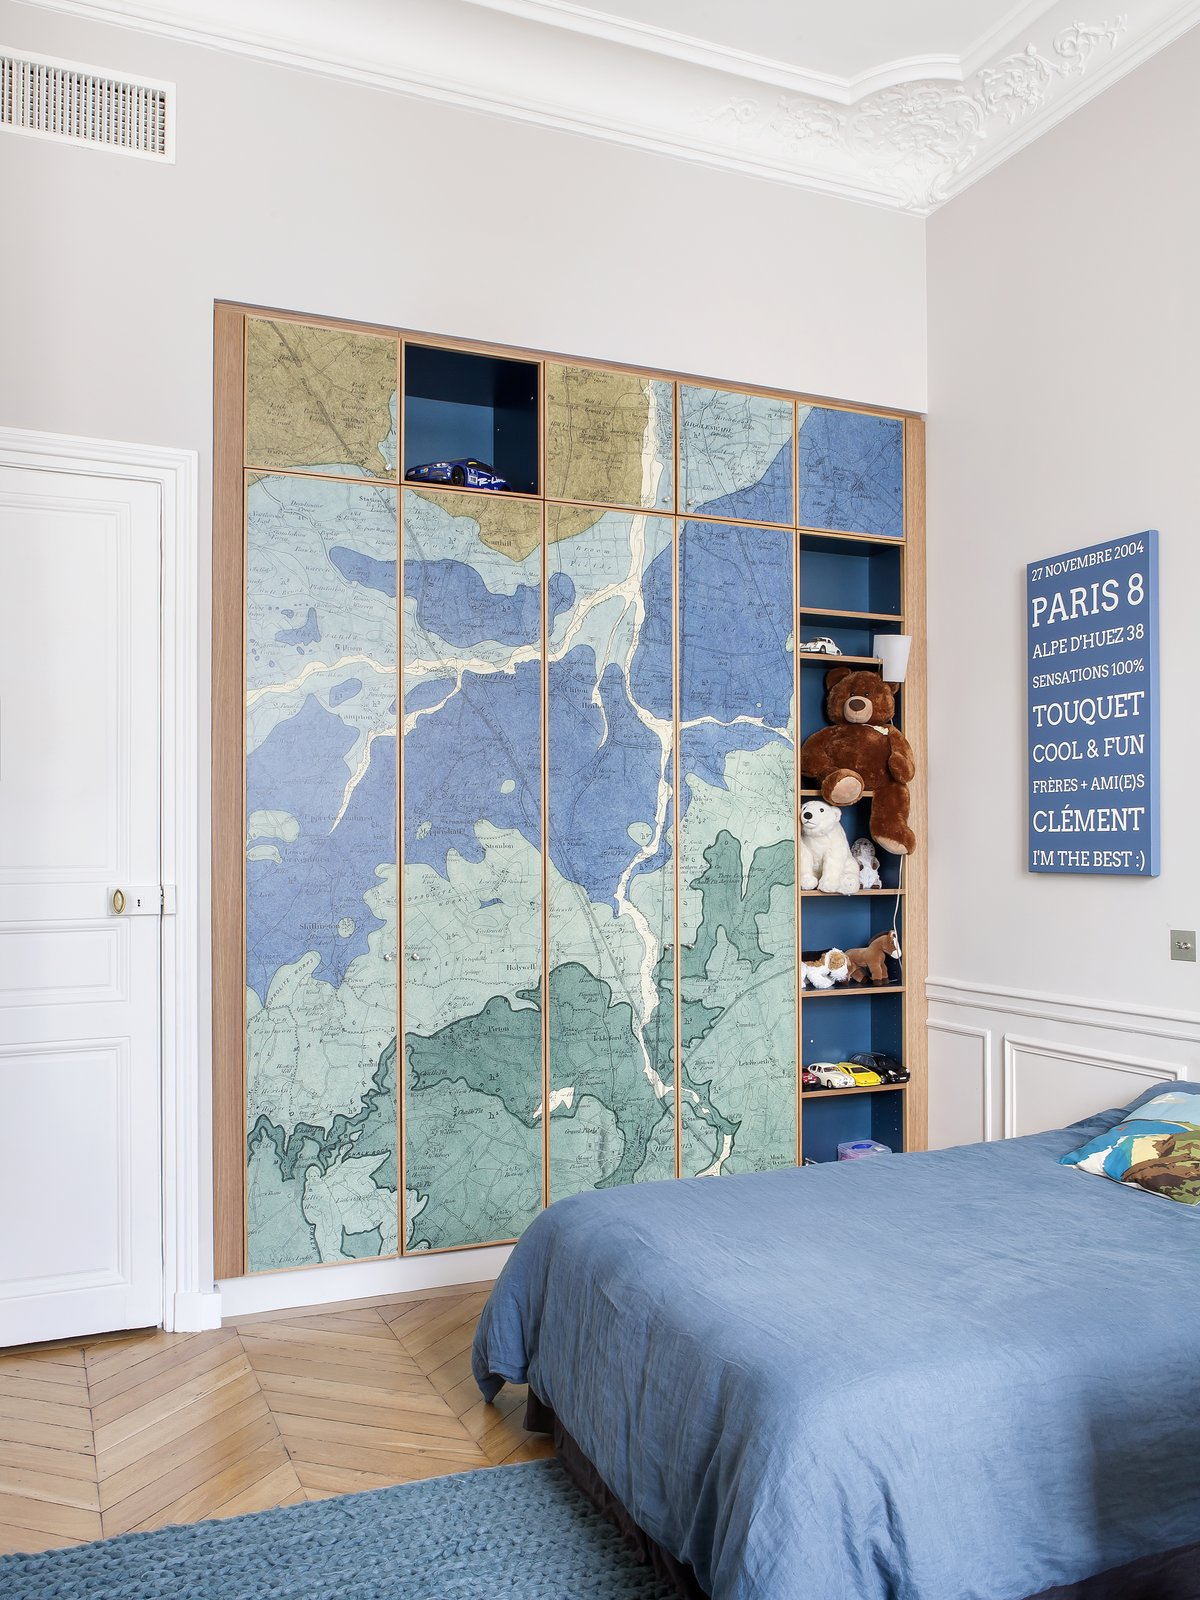 Kids Room, Bedroom Room Type, Storage, Medium Hardwood Floor, Rug Floor, and Bed Oh My Wall from Paris Wallpaper was fitted on wardrobe doors in one of the children's rooms.  Photos from A Parisian Abode Is Reborn With a Fresh, Unexpected Color Palette